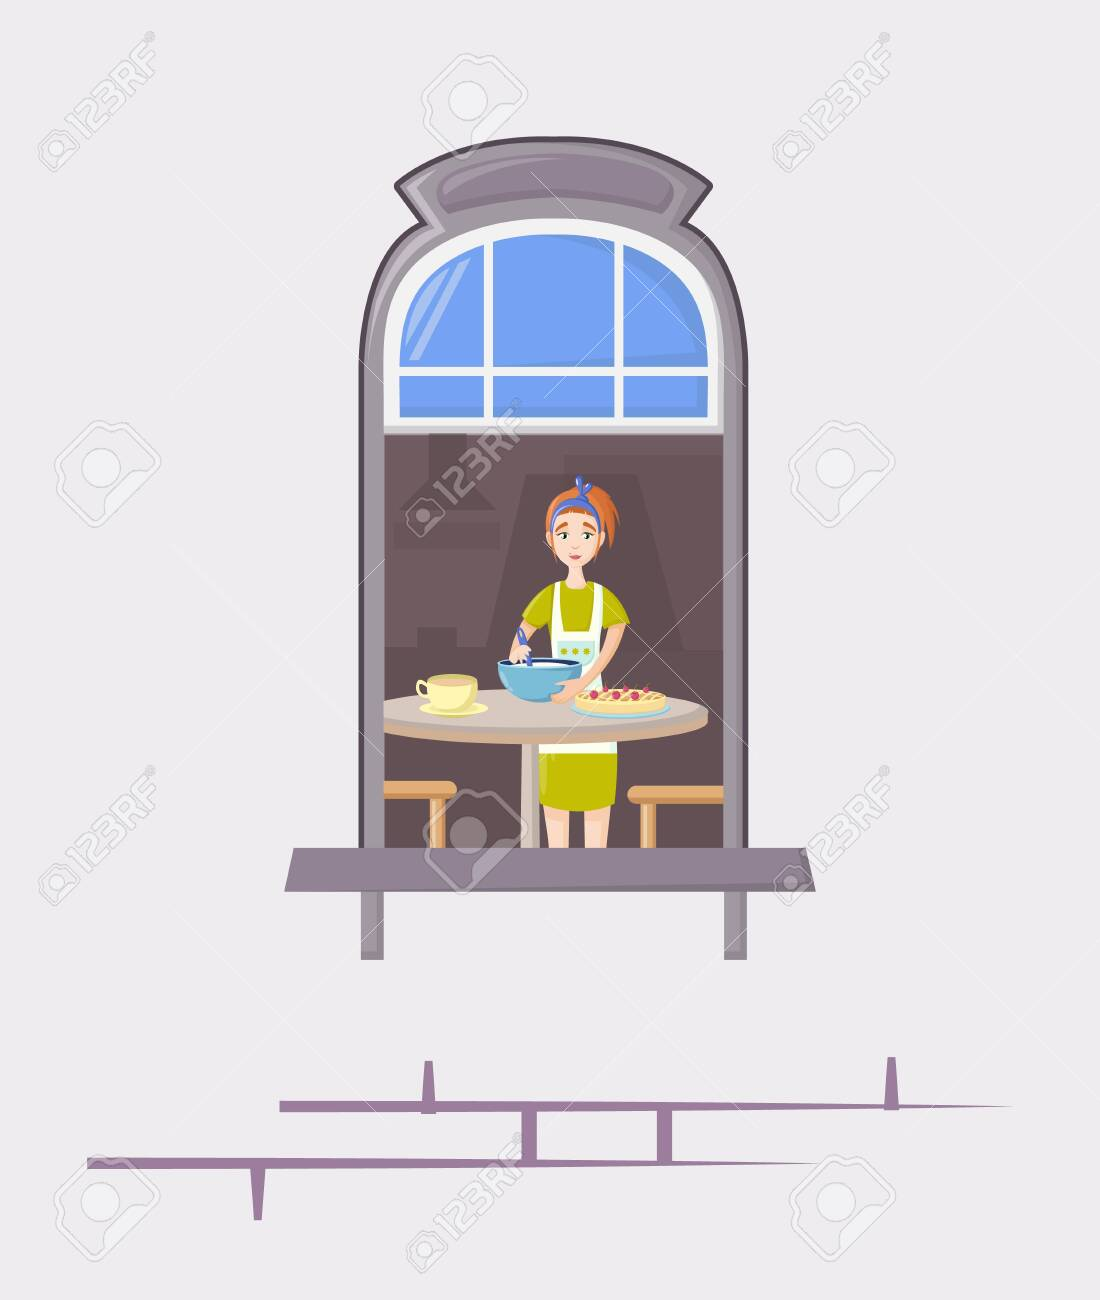 Neighbors in windows of old house. House building facade with open windows and with people. - 146426221